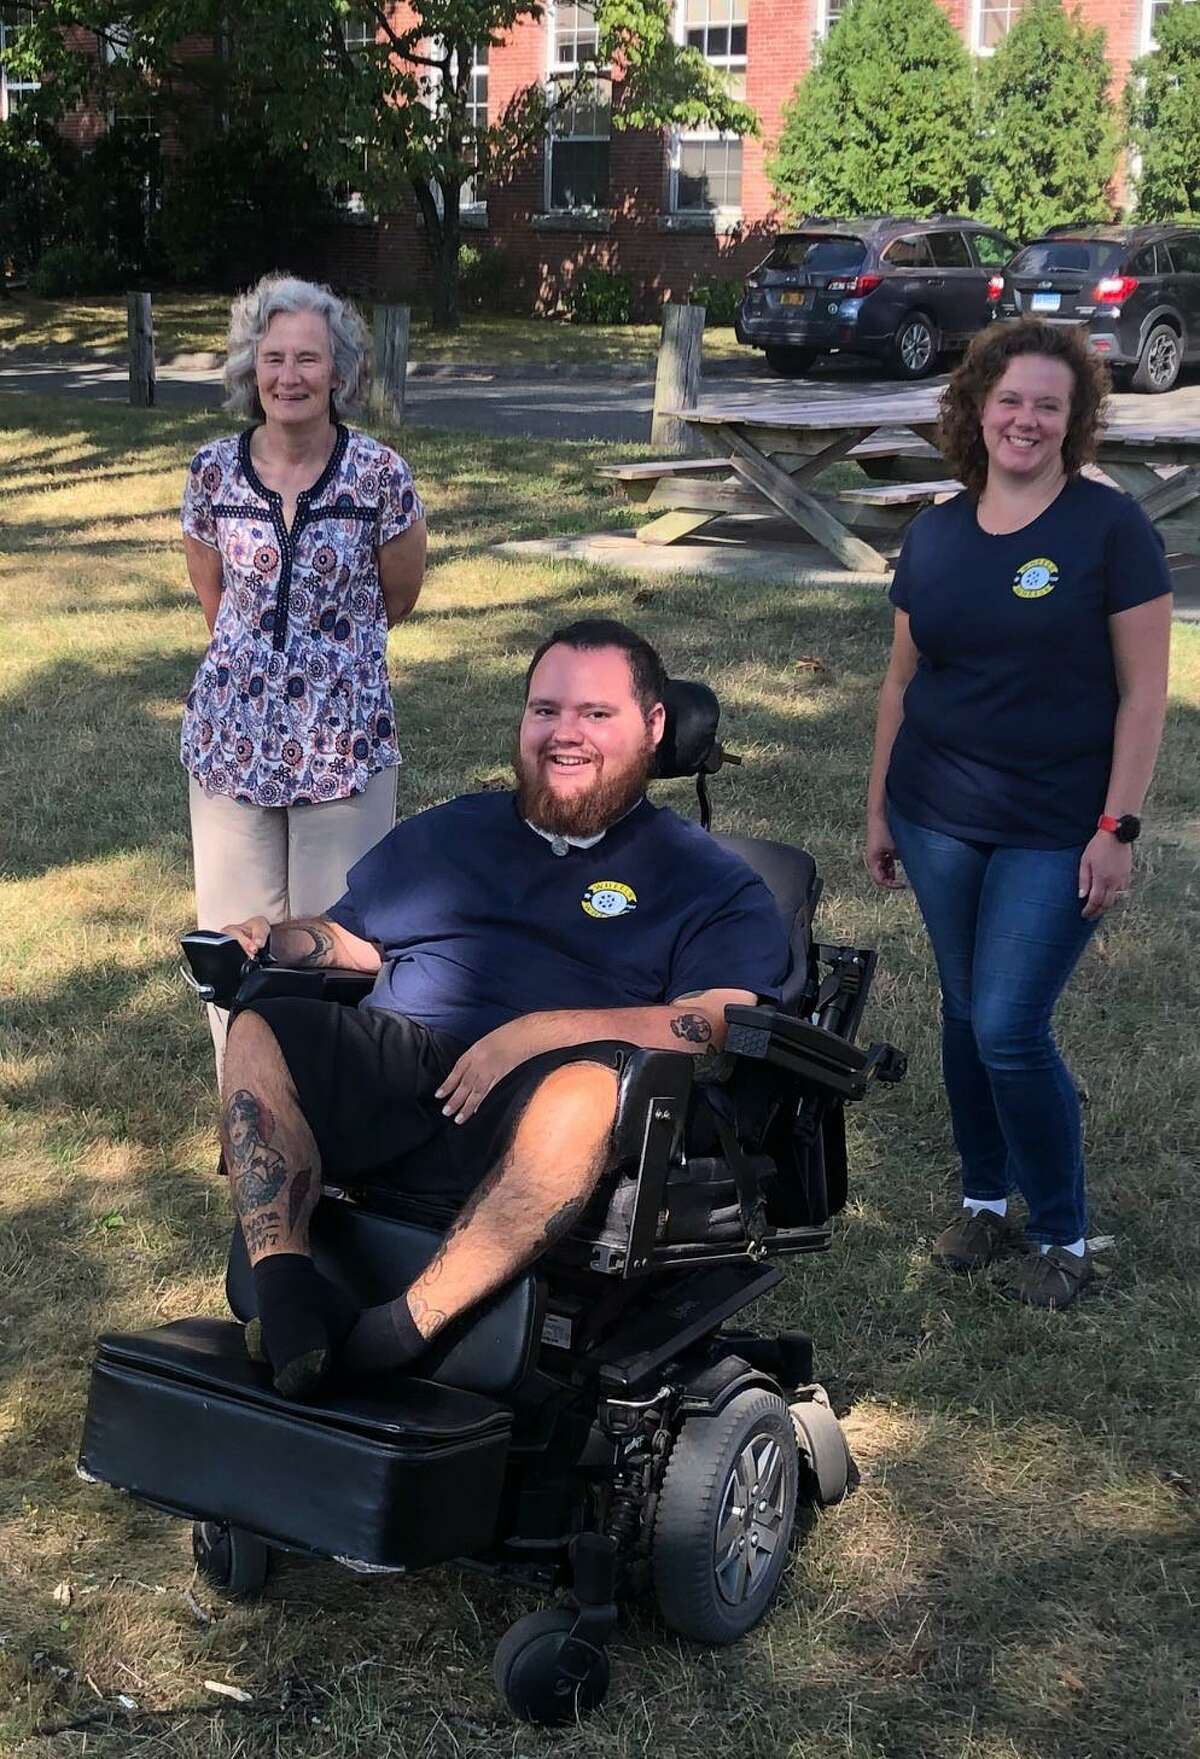 Sean Quigg of New Milford founded and is the director of the non-profit Wheels for Wheels, whose mission is to serve, uplift and mobilize the disabled community through advocacy, education and realized successes that foster compassion and advance accessibility. Quigg is shown above with Kathy Castagnetta, secretary, left, and Jeannette Hicks, vice chair.